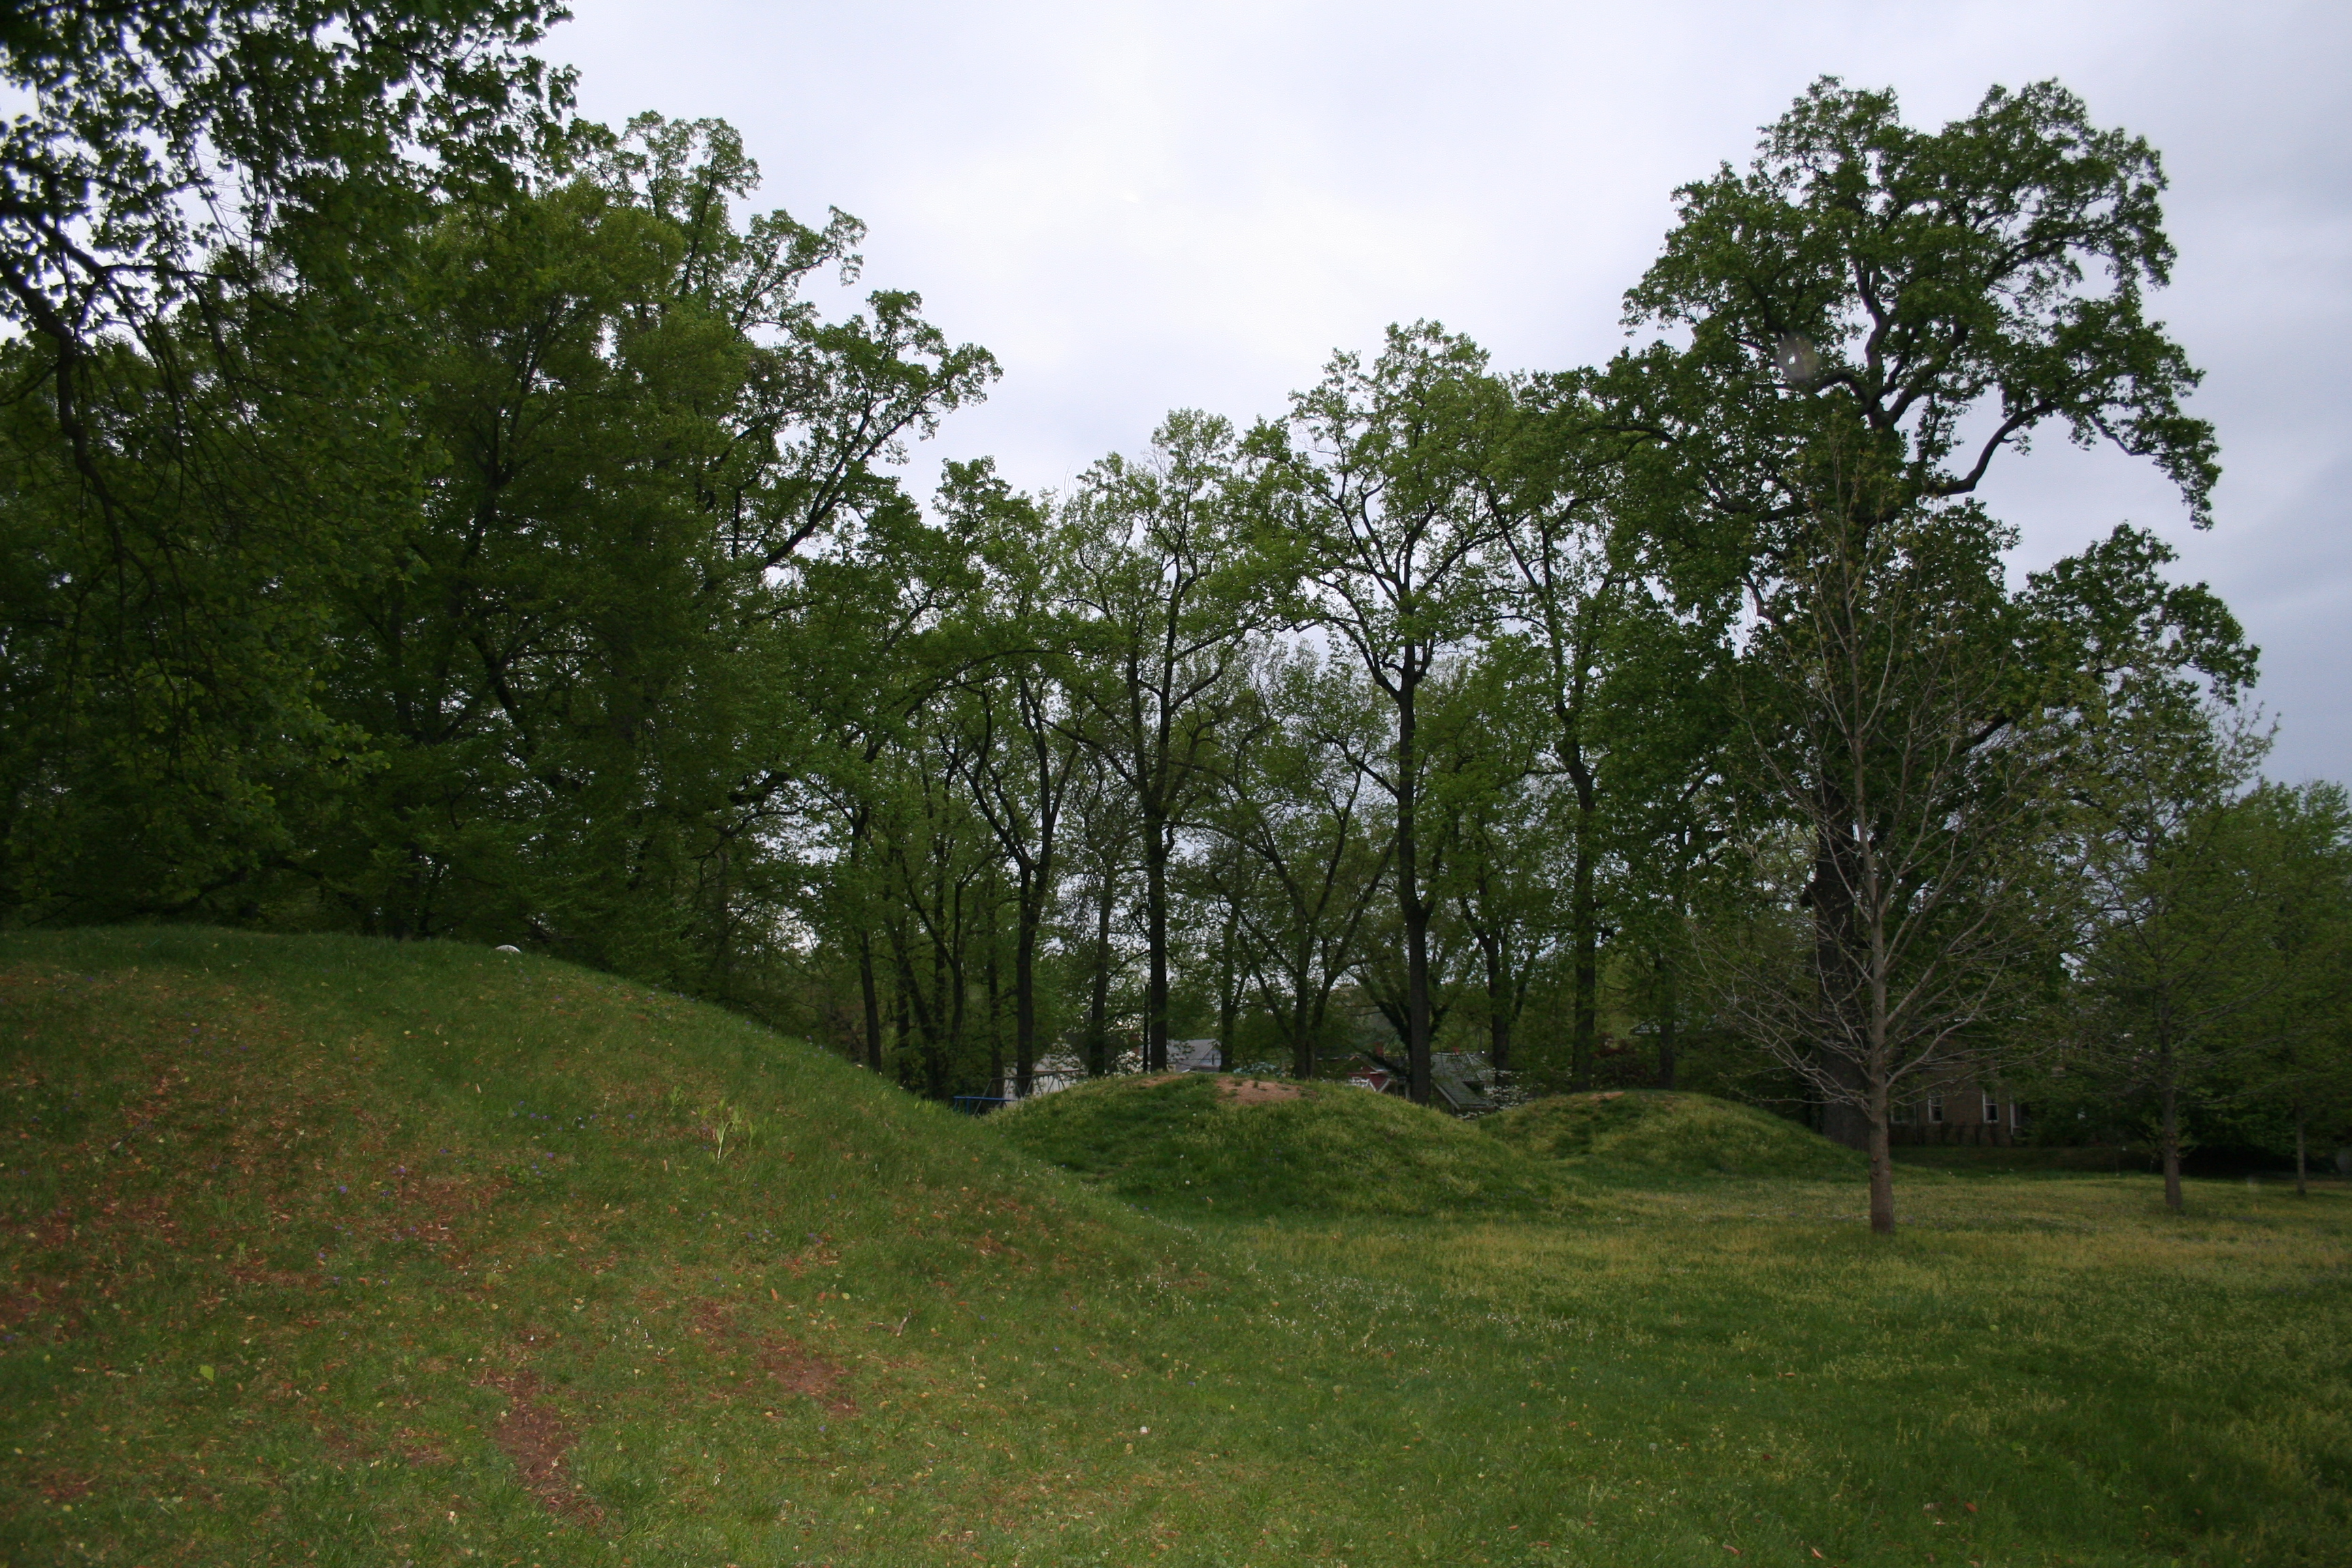 Another photo of the Adena mounds in Ashland Central Park.